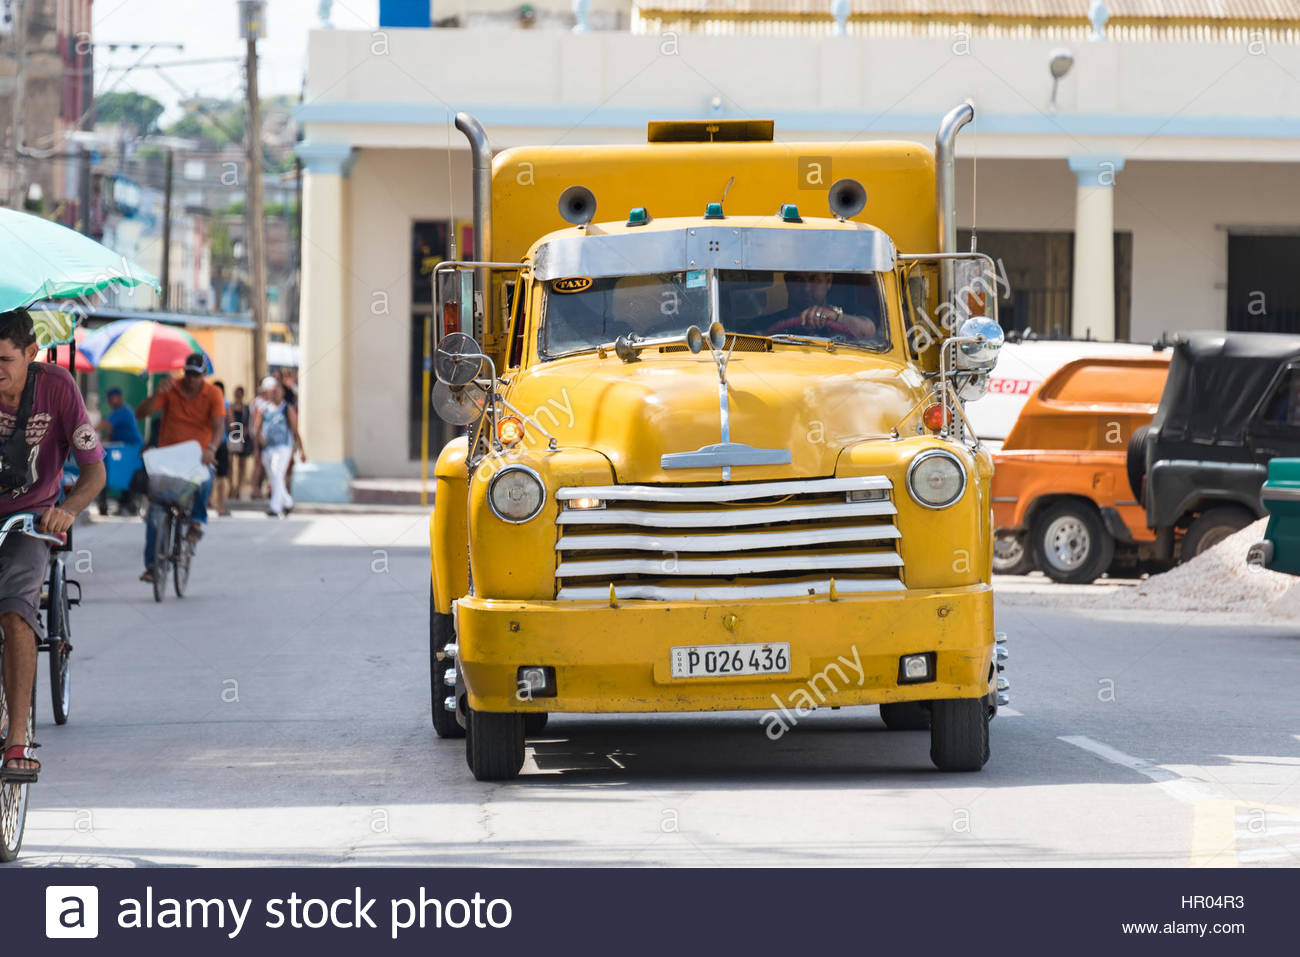 Cuba old yellow Chevrolet vintage truck in action. Economic hardship has forced Cuban people to maintain pre Revolution - Stock Image